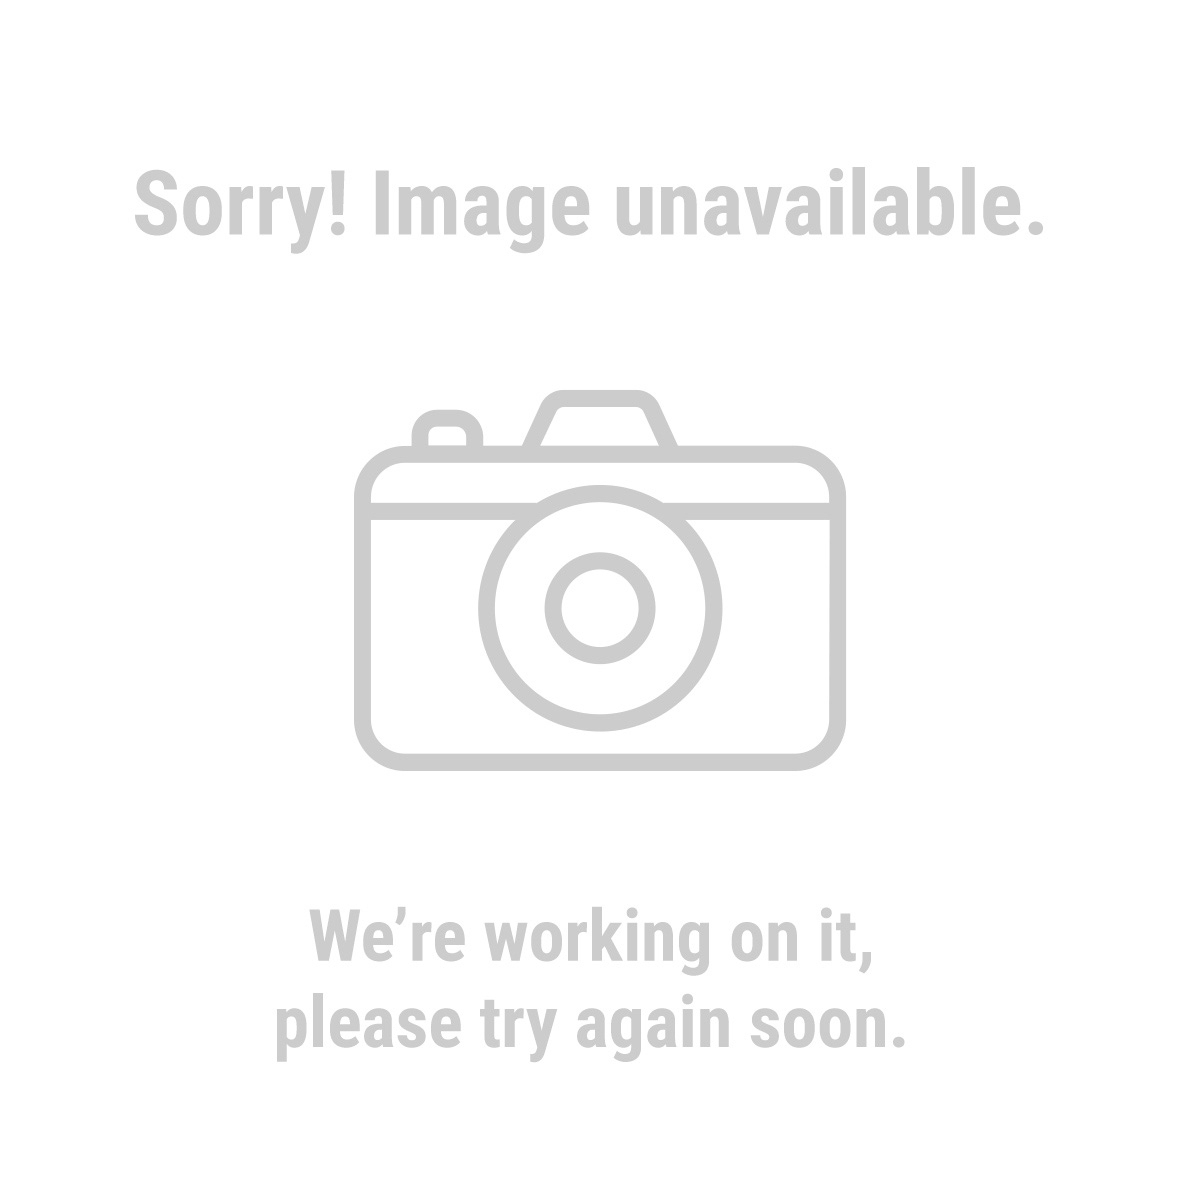 Greenwood® 63336 3/4 in. x 100 ft. Commercial Duty Garden Hose